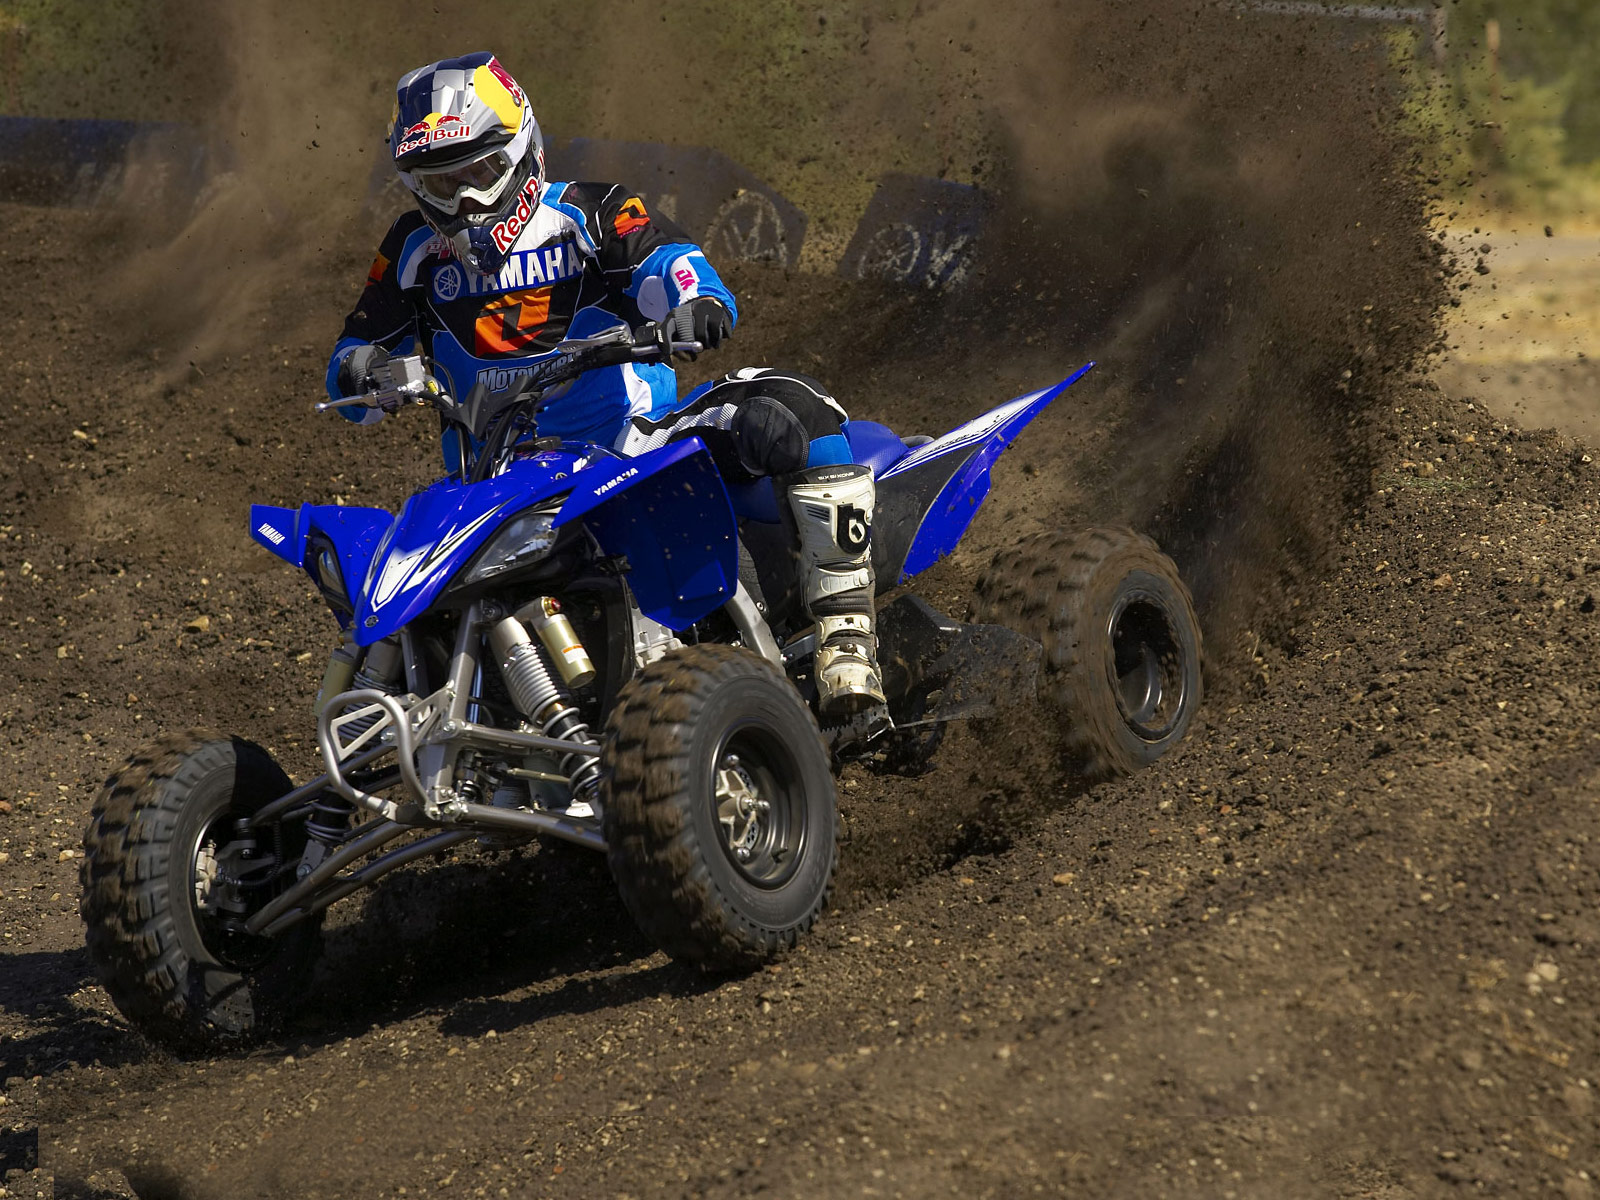 2010 YAMAHA YZF450R ATV Wallpapers specifications 1600x1200